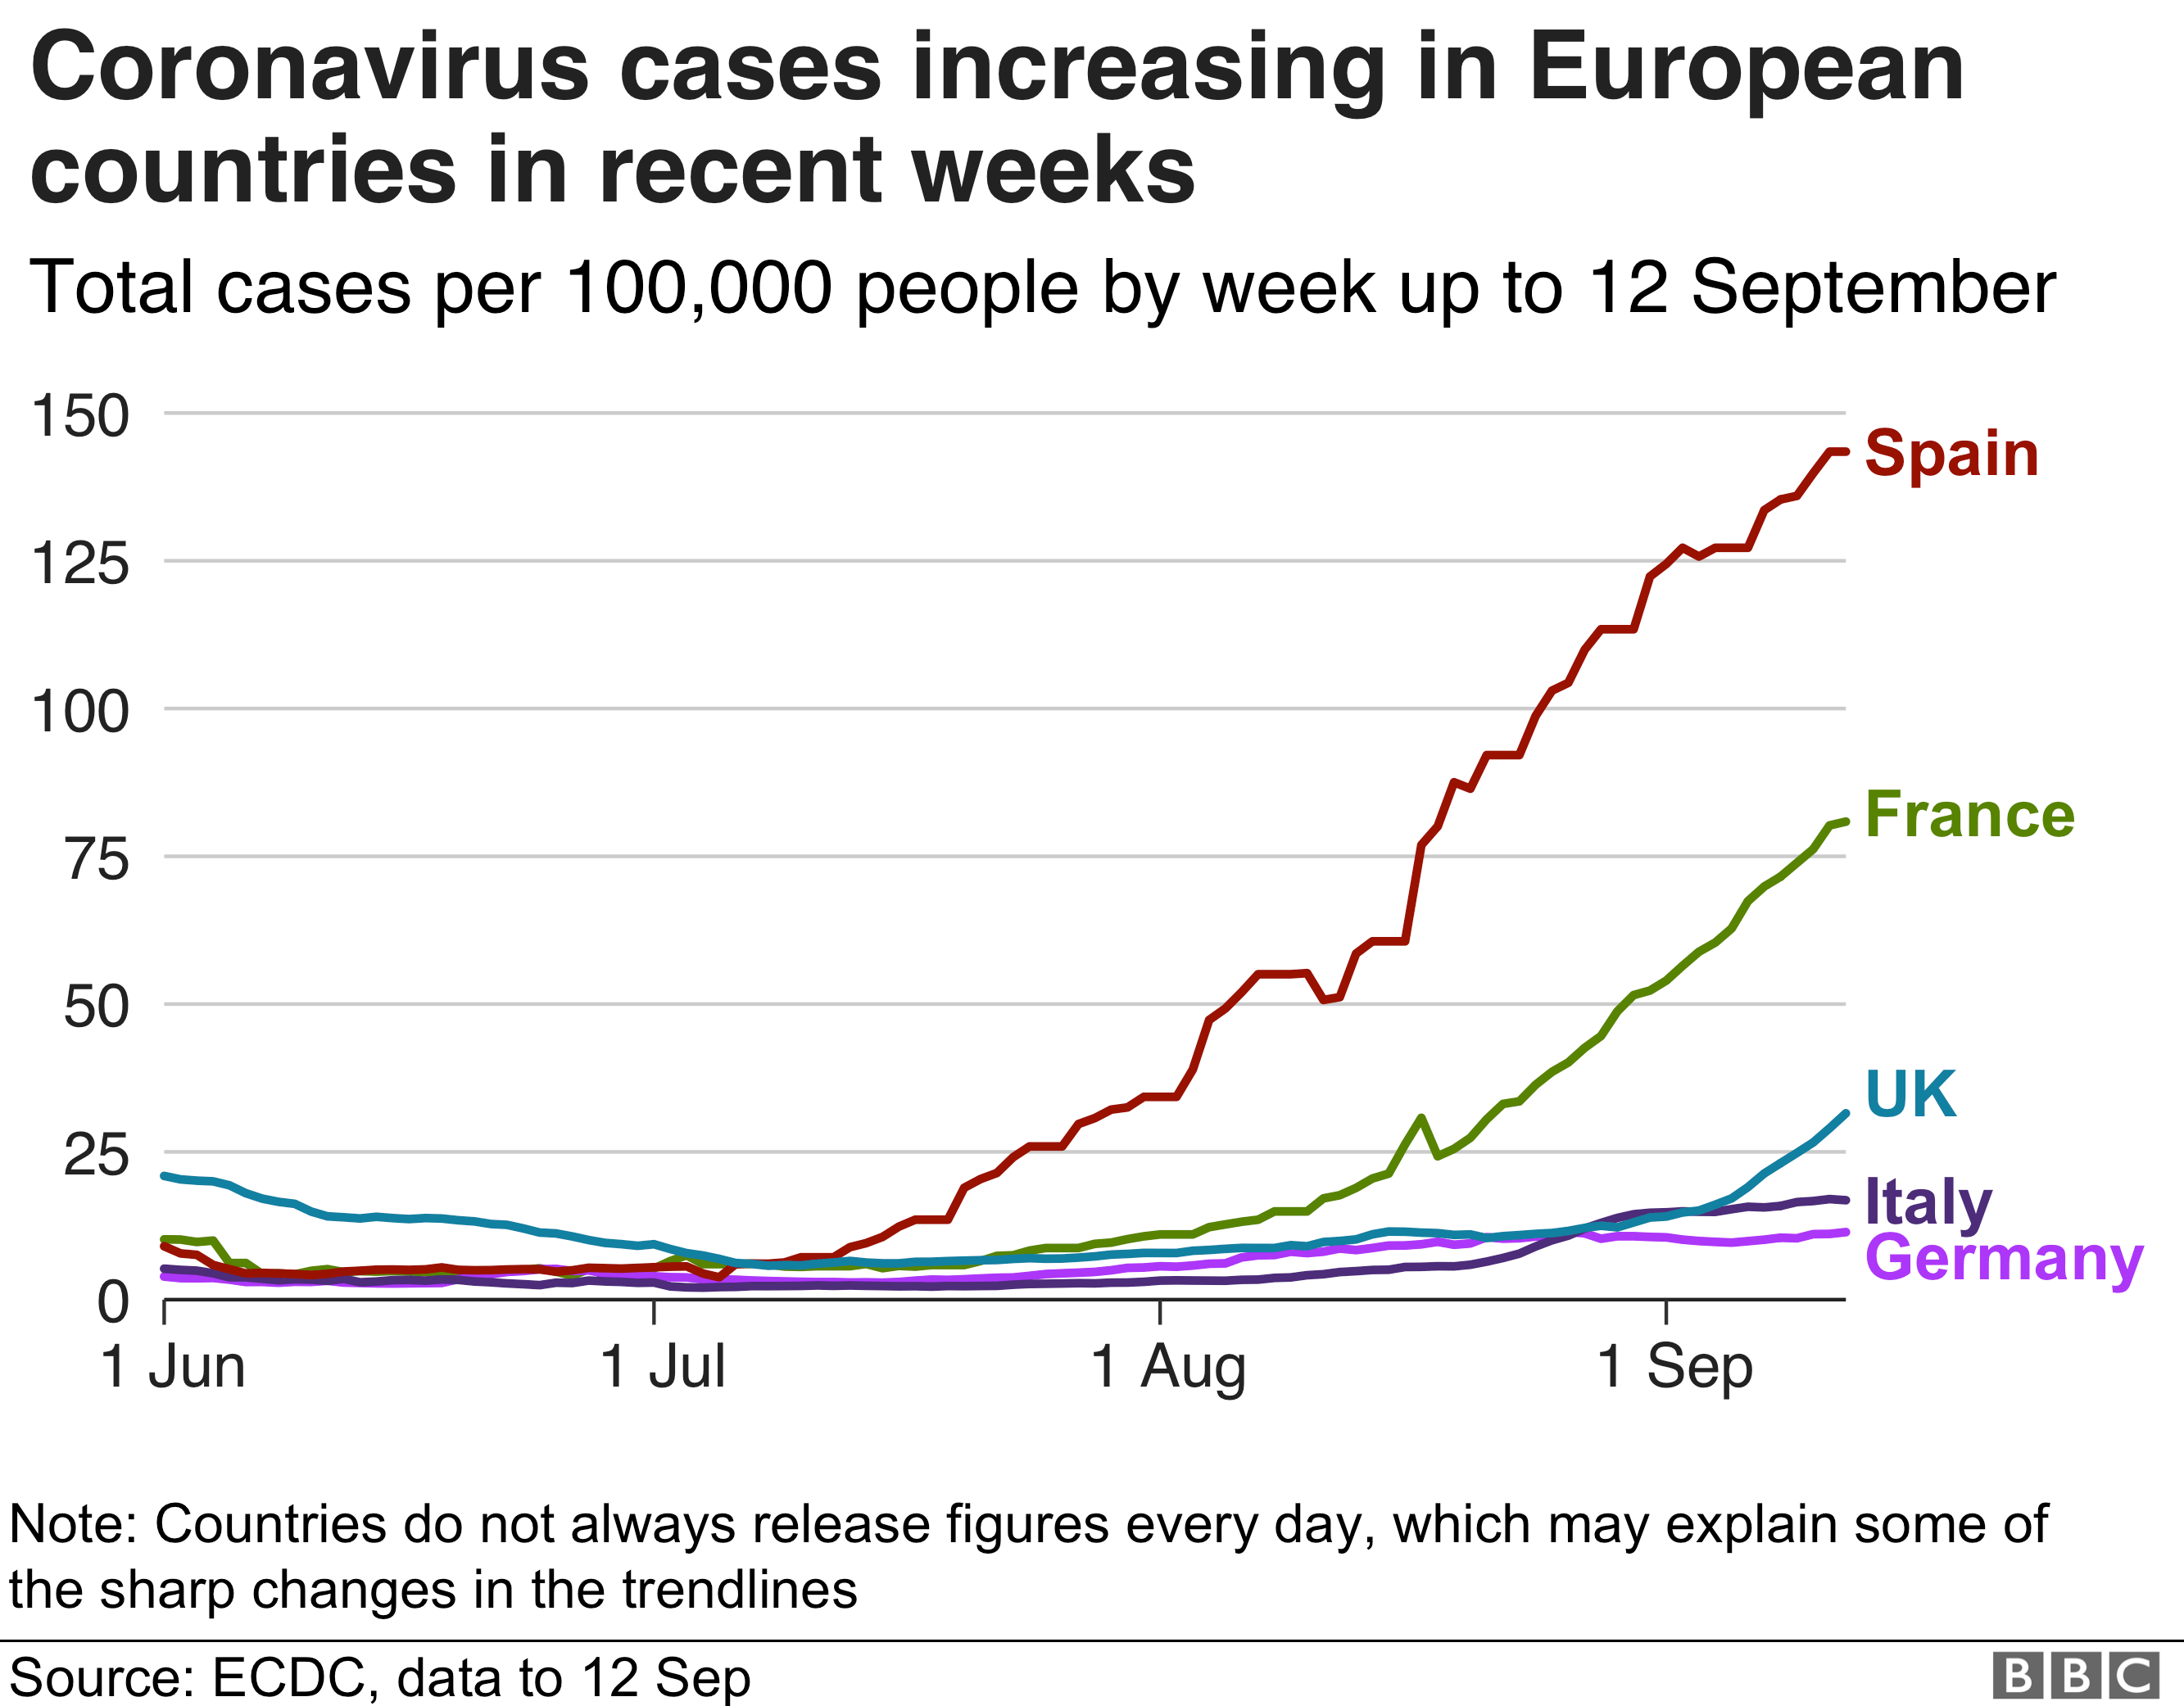 Line chart shows cases rising in European countries - the rise is steepest in Spain and France